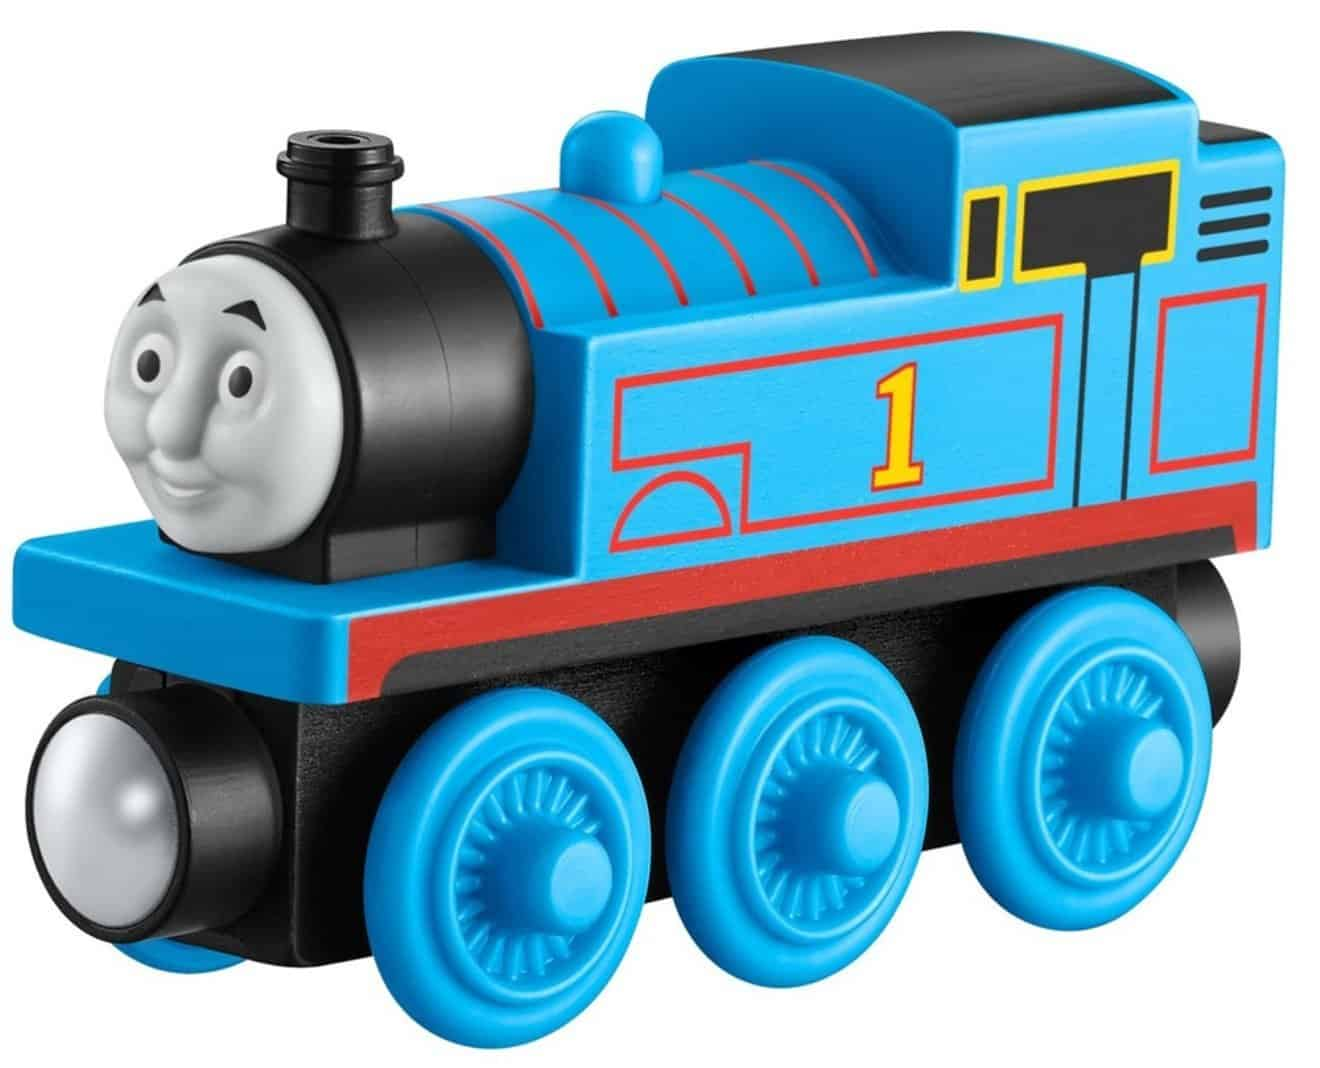 Wooden Thomas The Train besides How We Test Drones in addition Bhad Bhabie furthermore Mechero Bunsen Cllave Gas Licuado150 Mm Alto moreover D0 B0 D0 BC D0 BC D1 83 D0 B4 D1 8C D1 8F  D0 BF D0 BB D1 8F D0 B6. on fisher